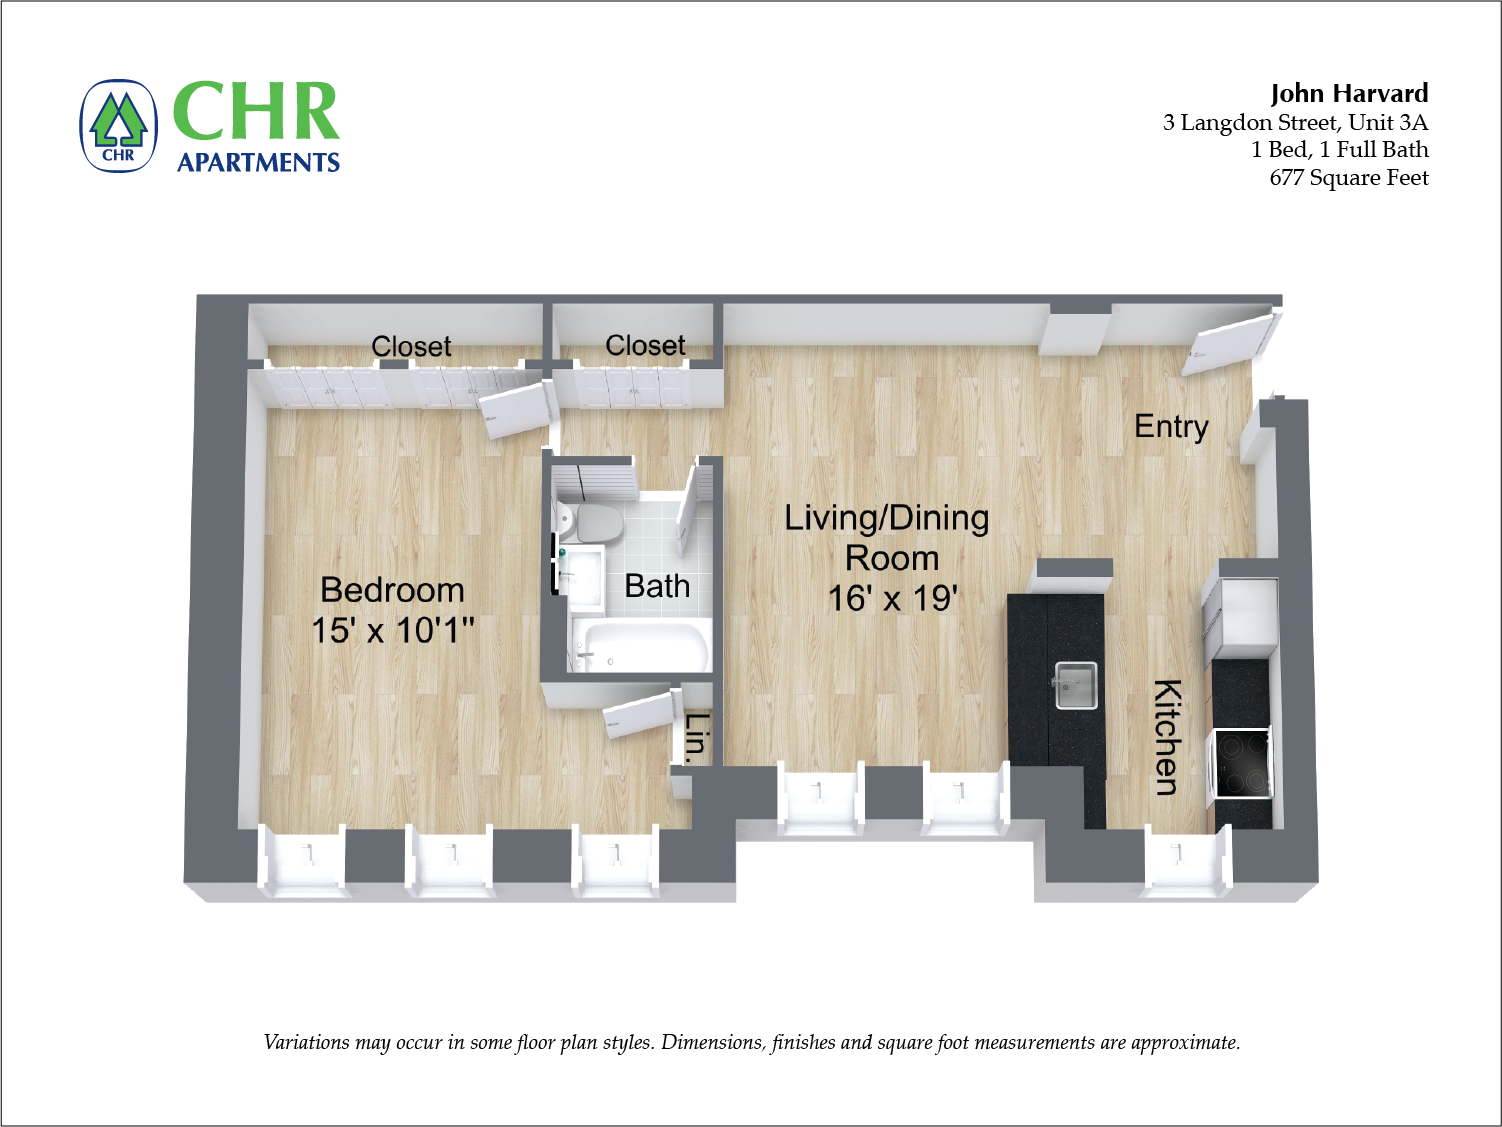 Click to view 1 Bedroom floor plan gallery